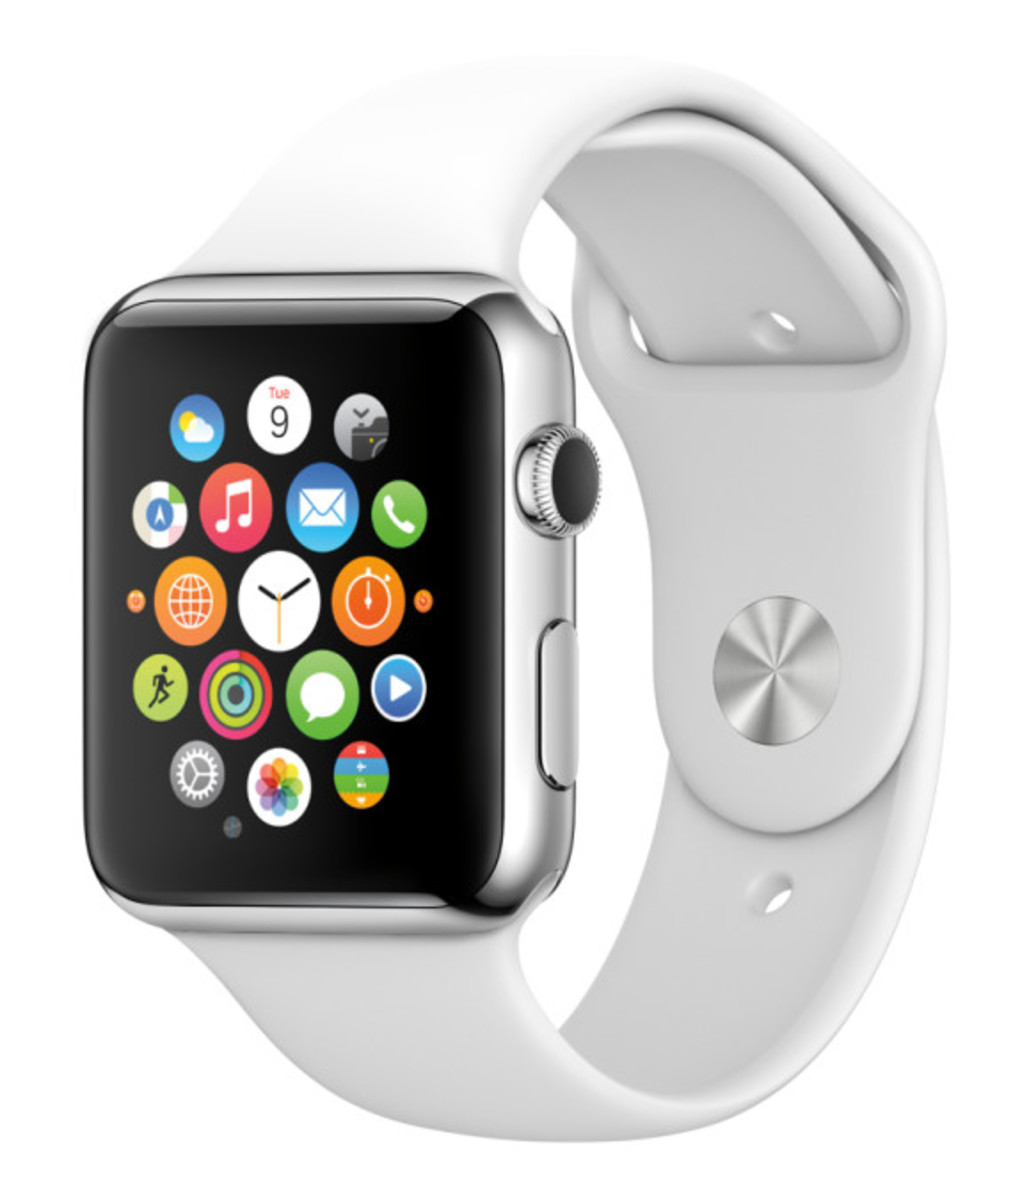 apple-introduces-the-apple-watch-02